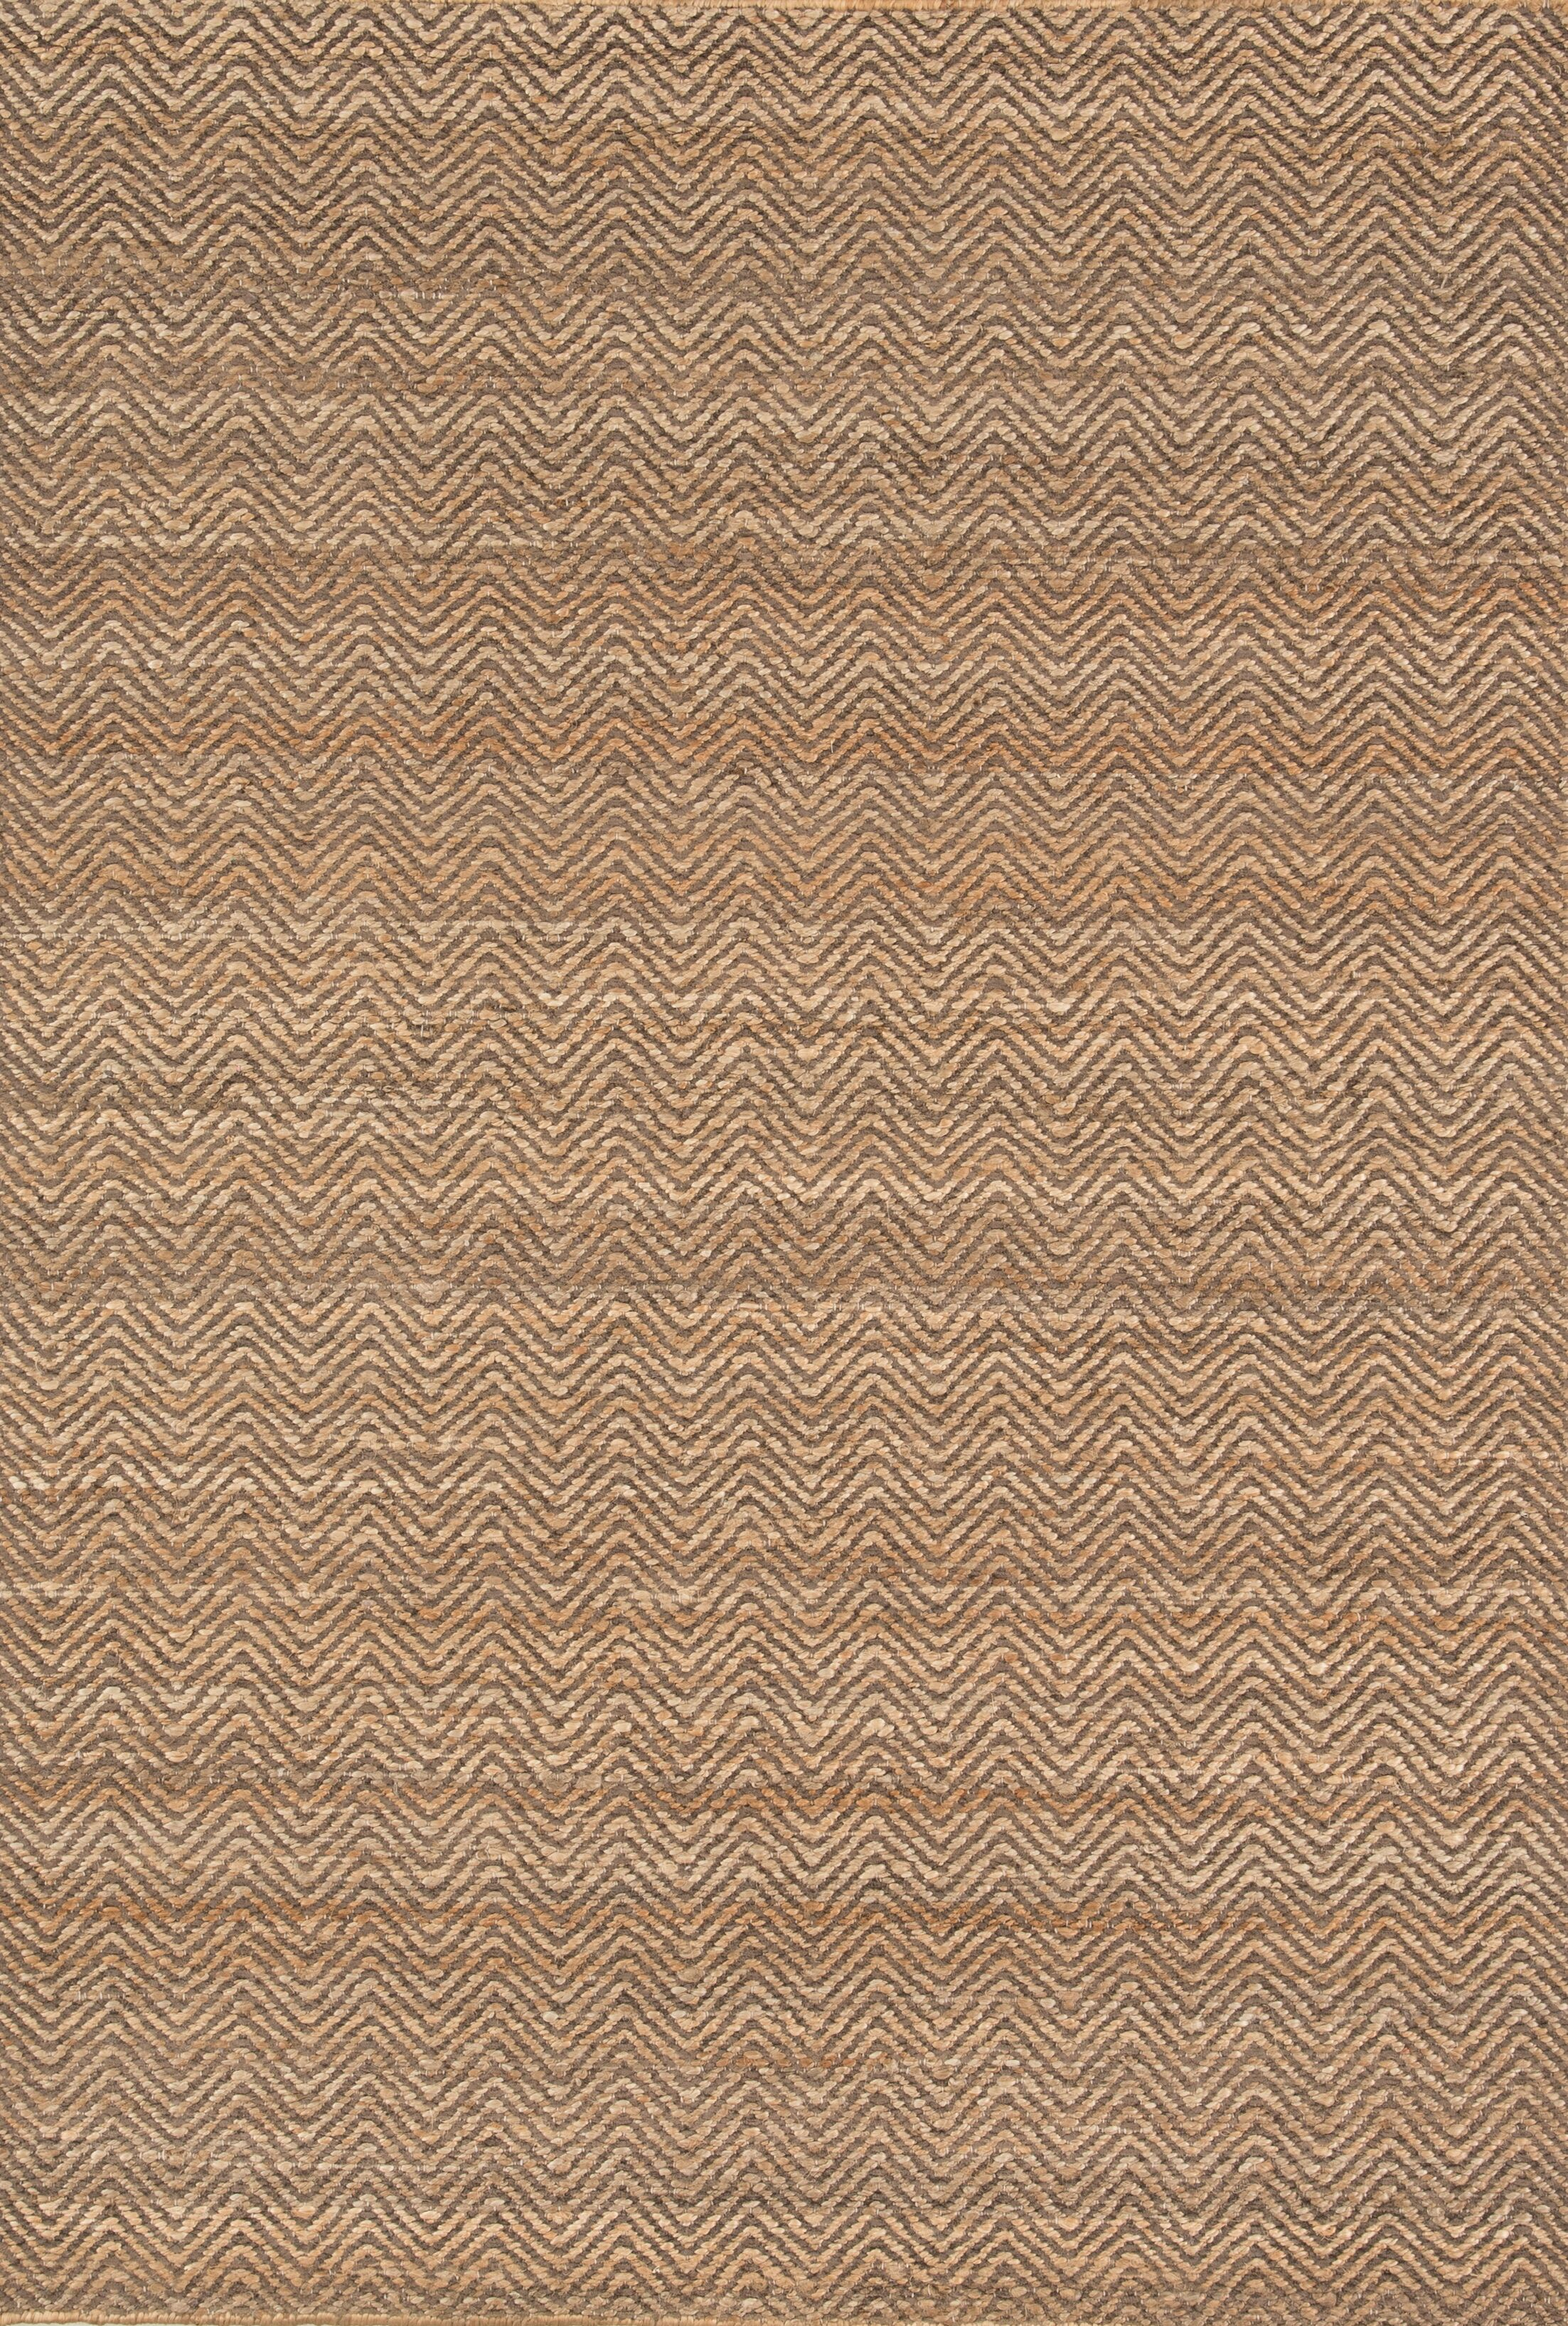 Hand-Woven Jute Natural Indoor Area Rug Rug Size: Rectangle 10' x 14'